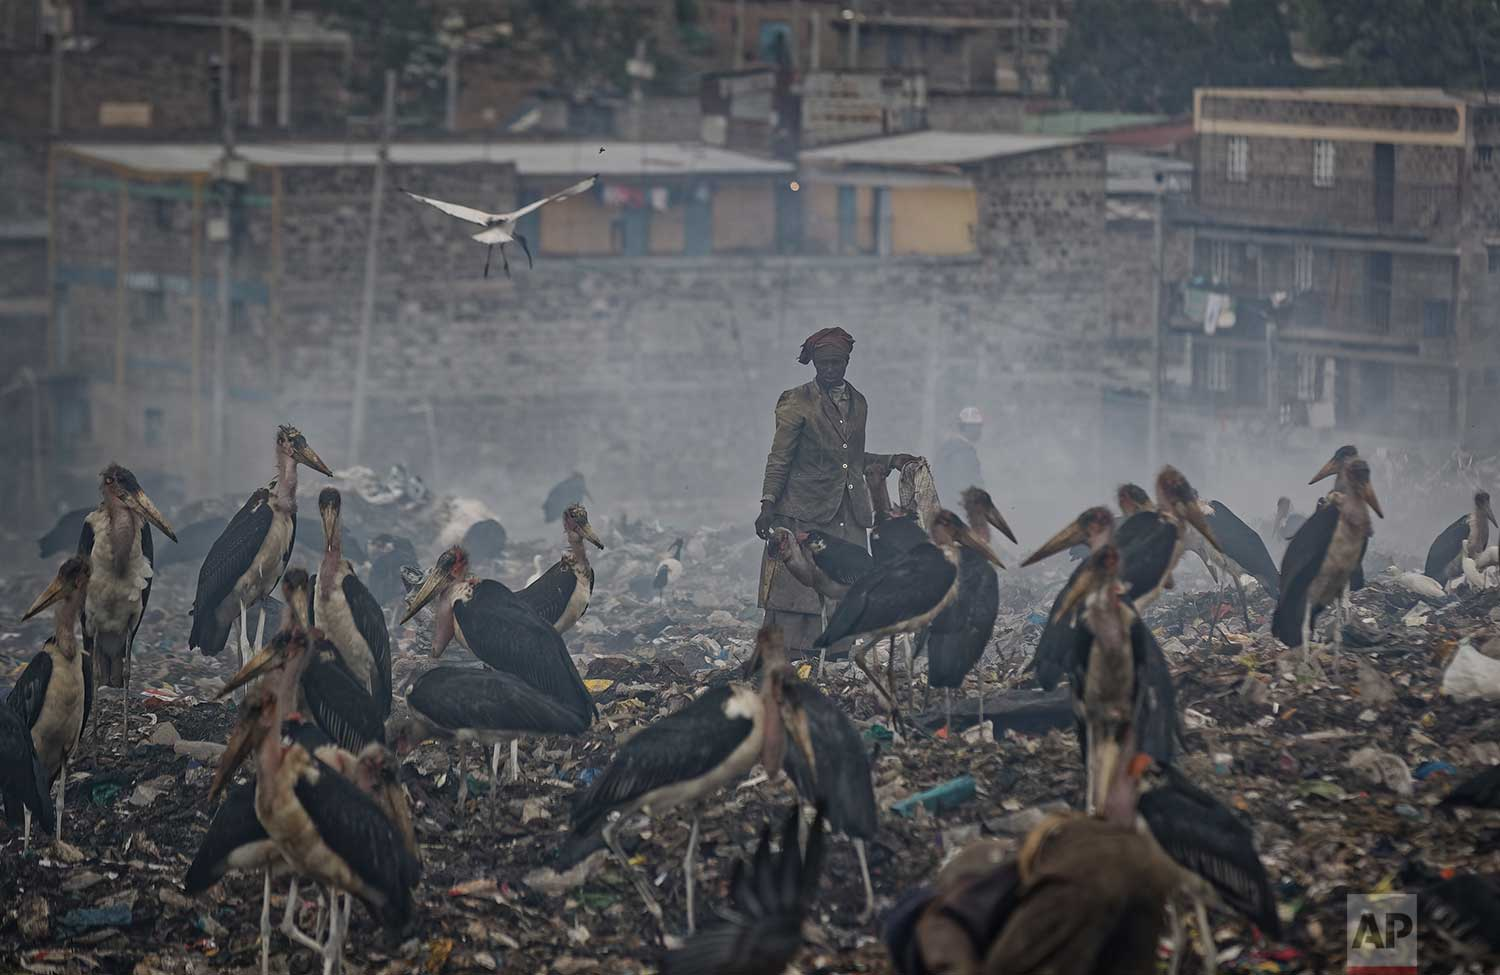 In this photo taken Wednesday, Dec. 5, 2018, a woman who scavenges recyclable materials from garbage for a living is seen through a cloud of smoke from burning trash, surrounded by Marabou storks who feed on the garbage, at the dump in the Dandora slum of Nairobi, Kenya. (AP Photo/Ben Curtis)